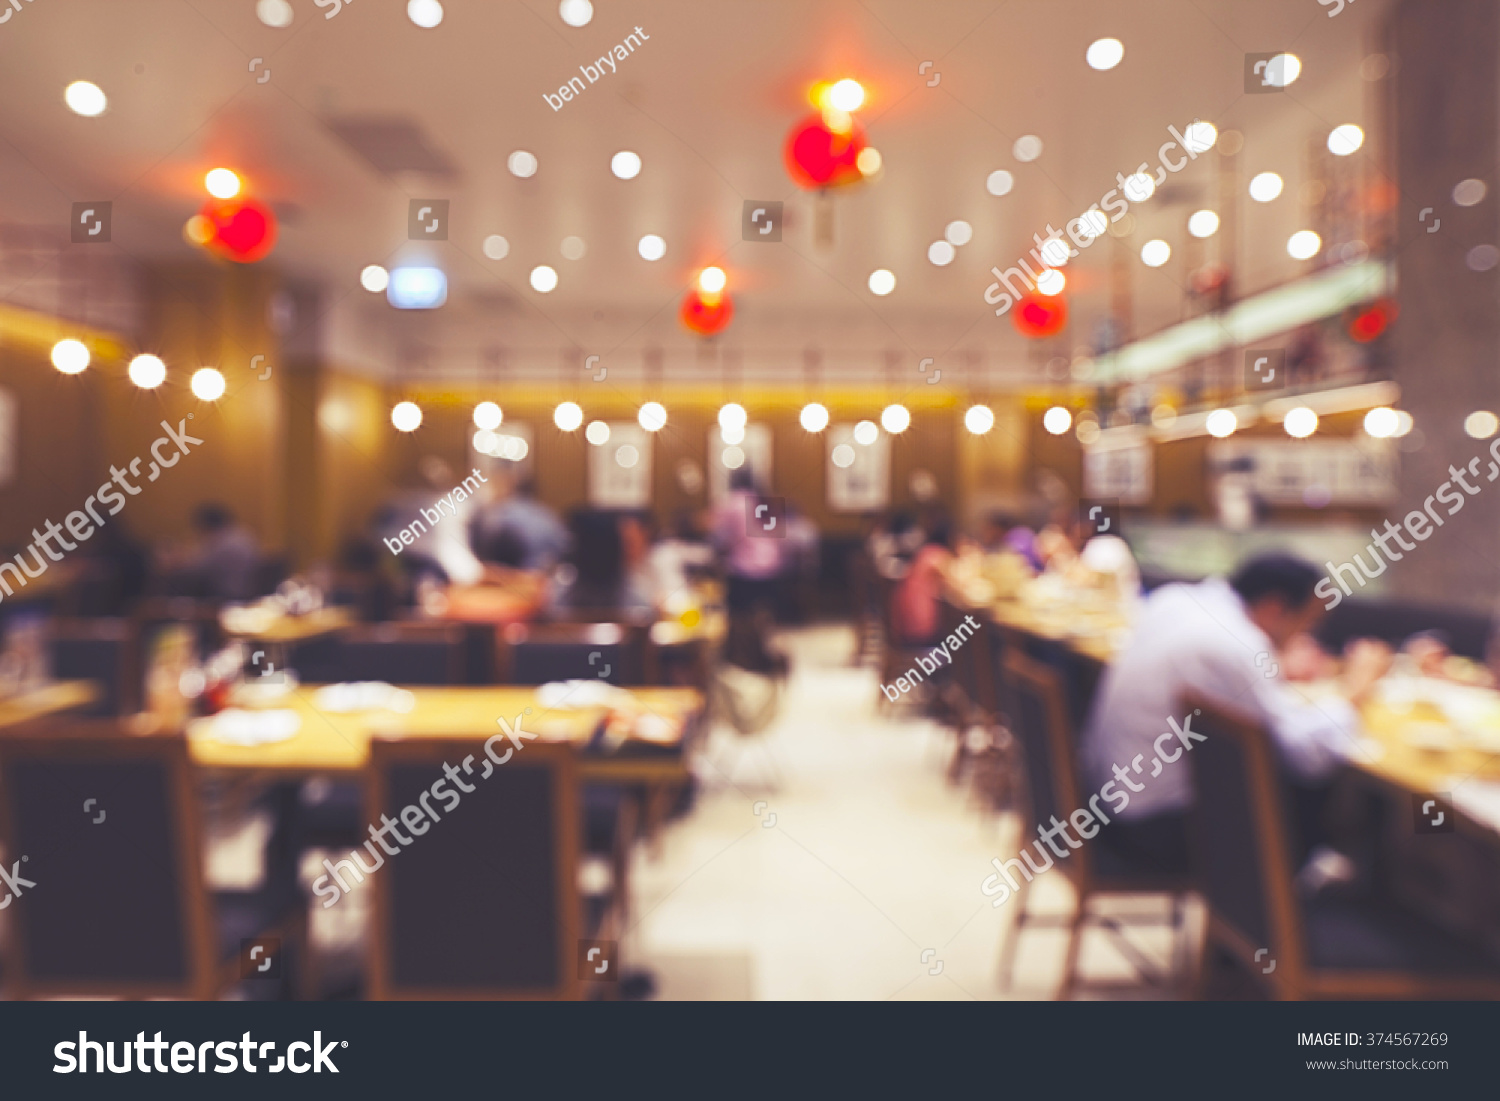 Restaurant Background With People Chinese Restaurant Blur Background Bokeh Image Stock Photo